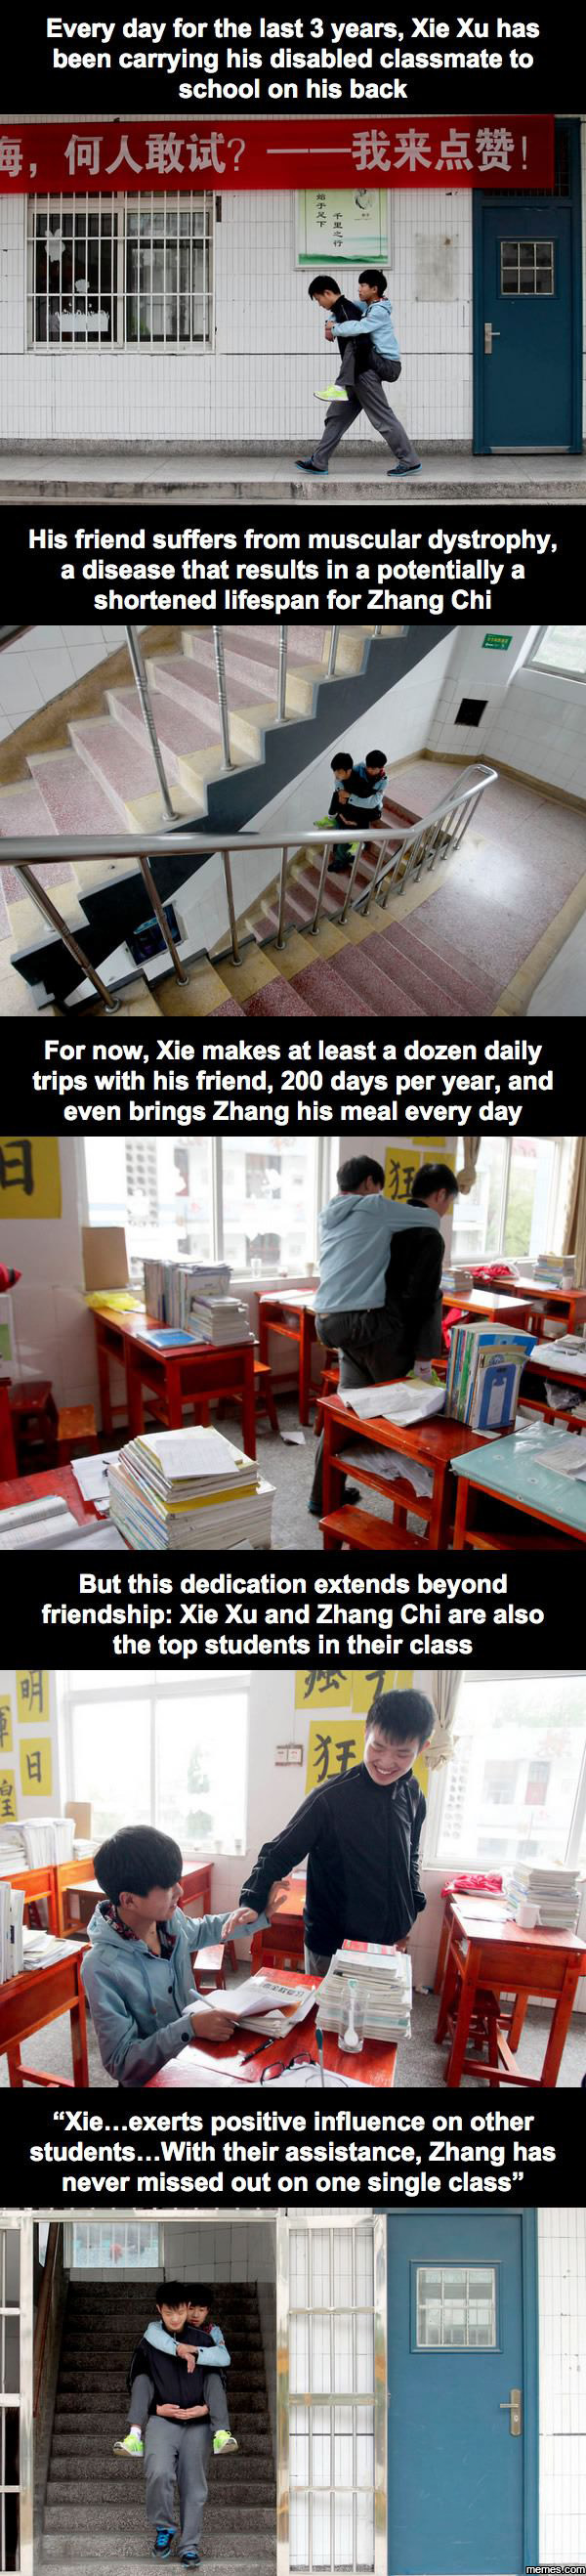 Every day for the last 3 years, Xie Xu has been carrying his disabled classmate to school on his back.